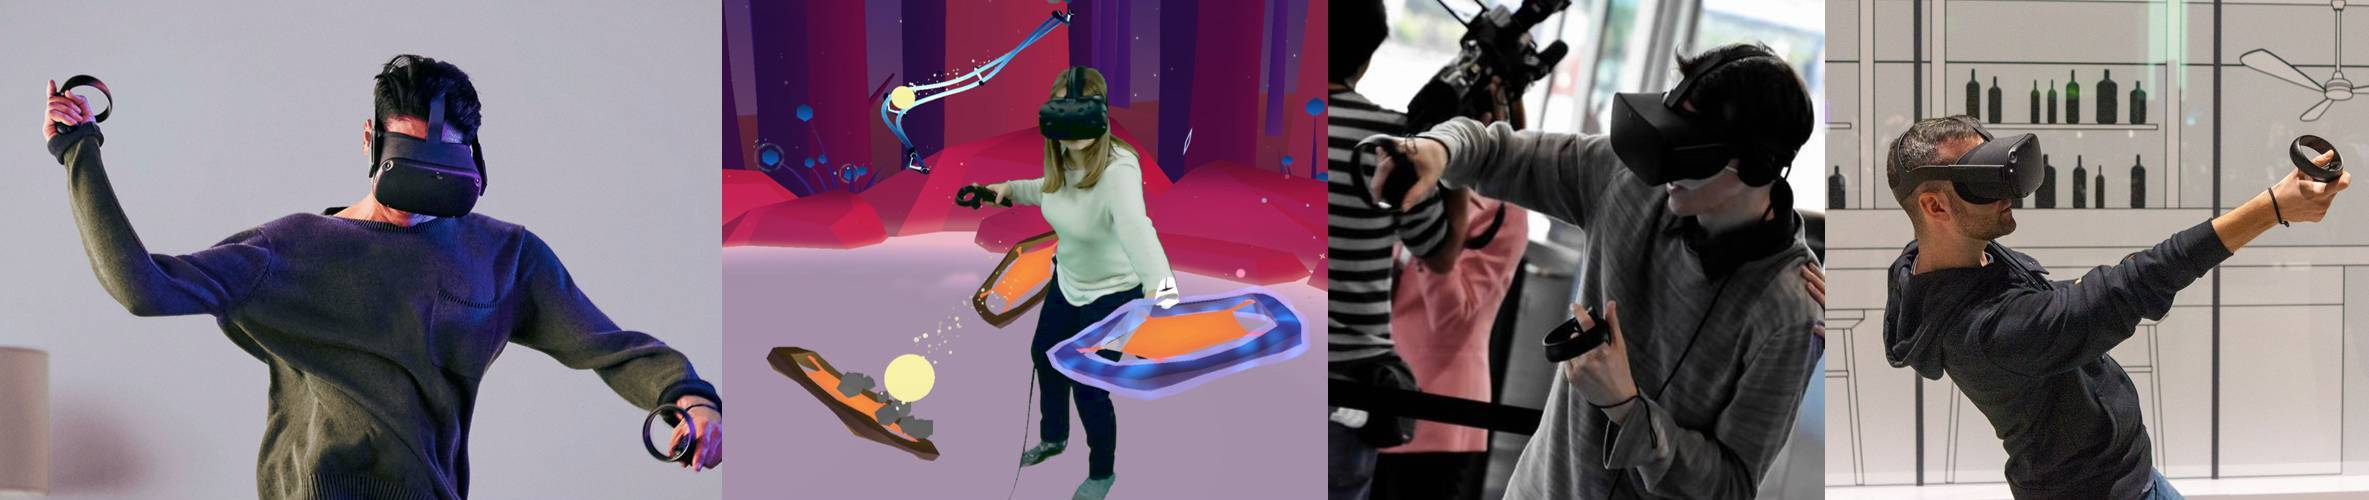 Oculus Quest VR gaming virtual reality party in Houston, Texas